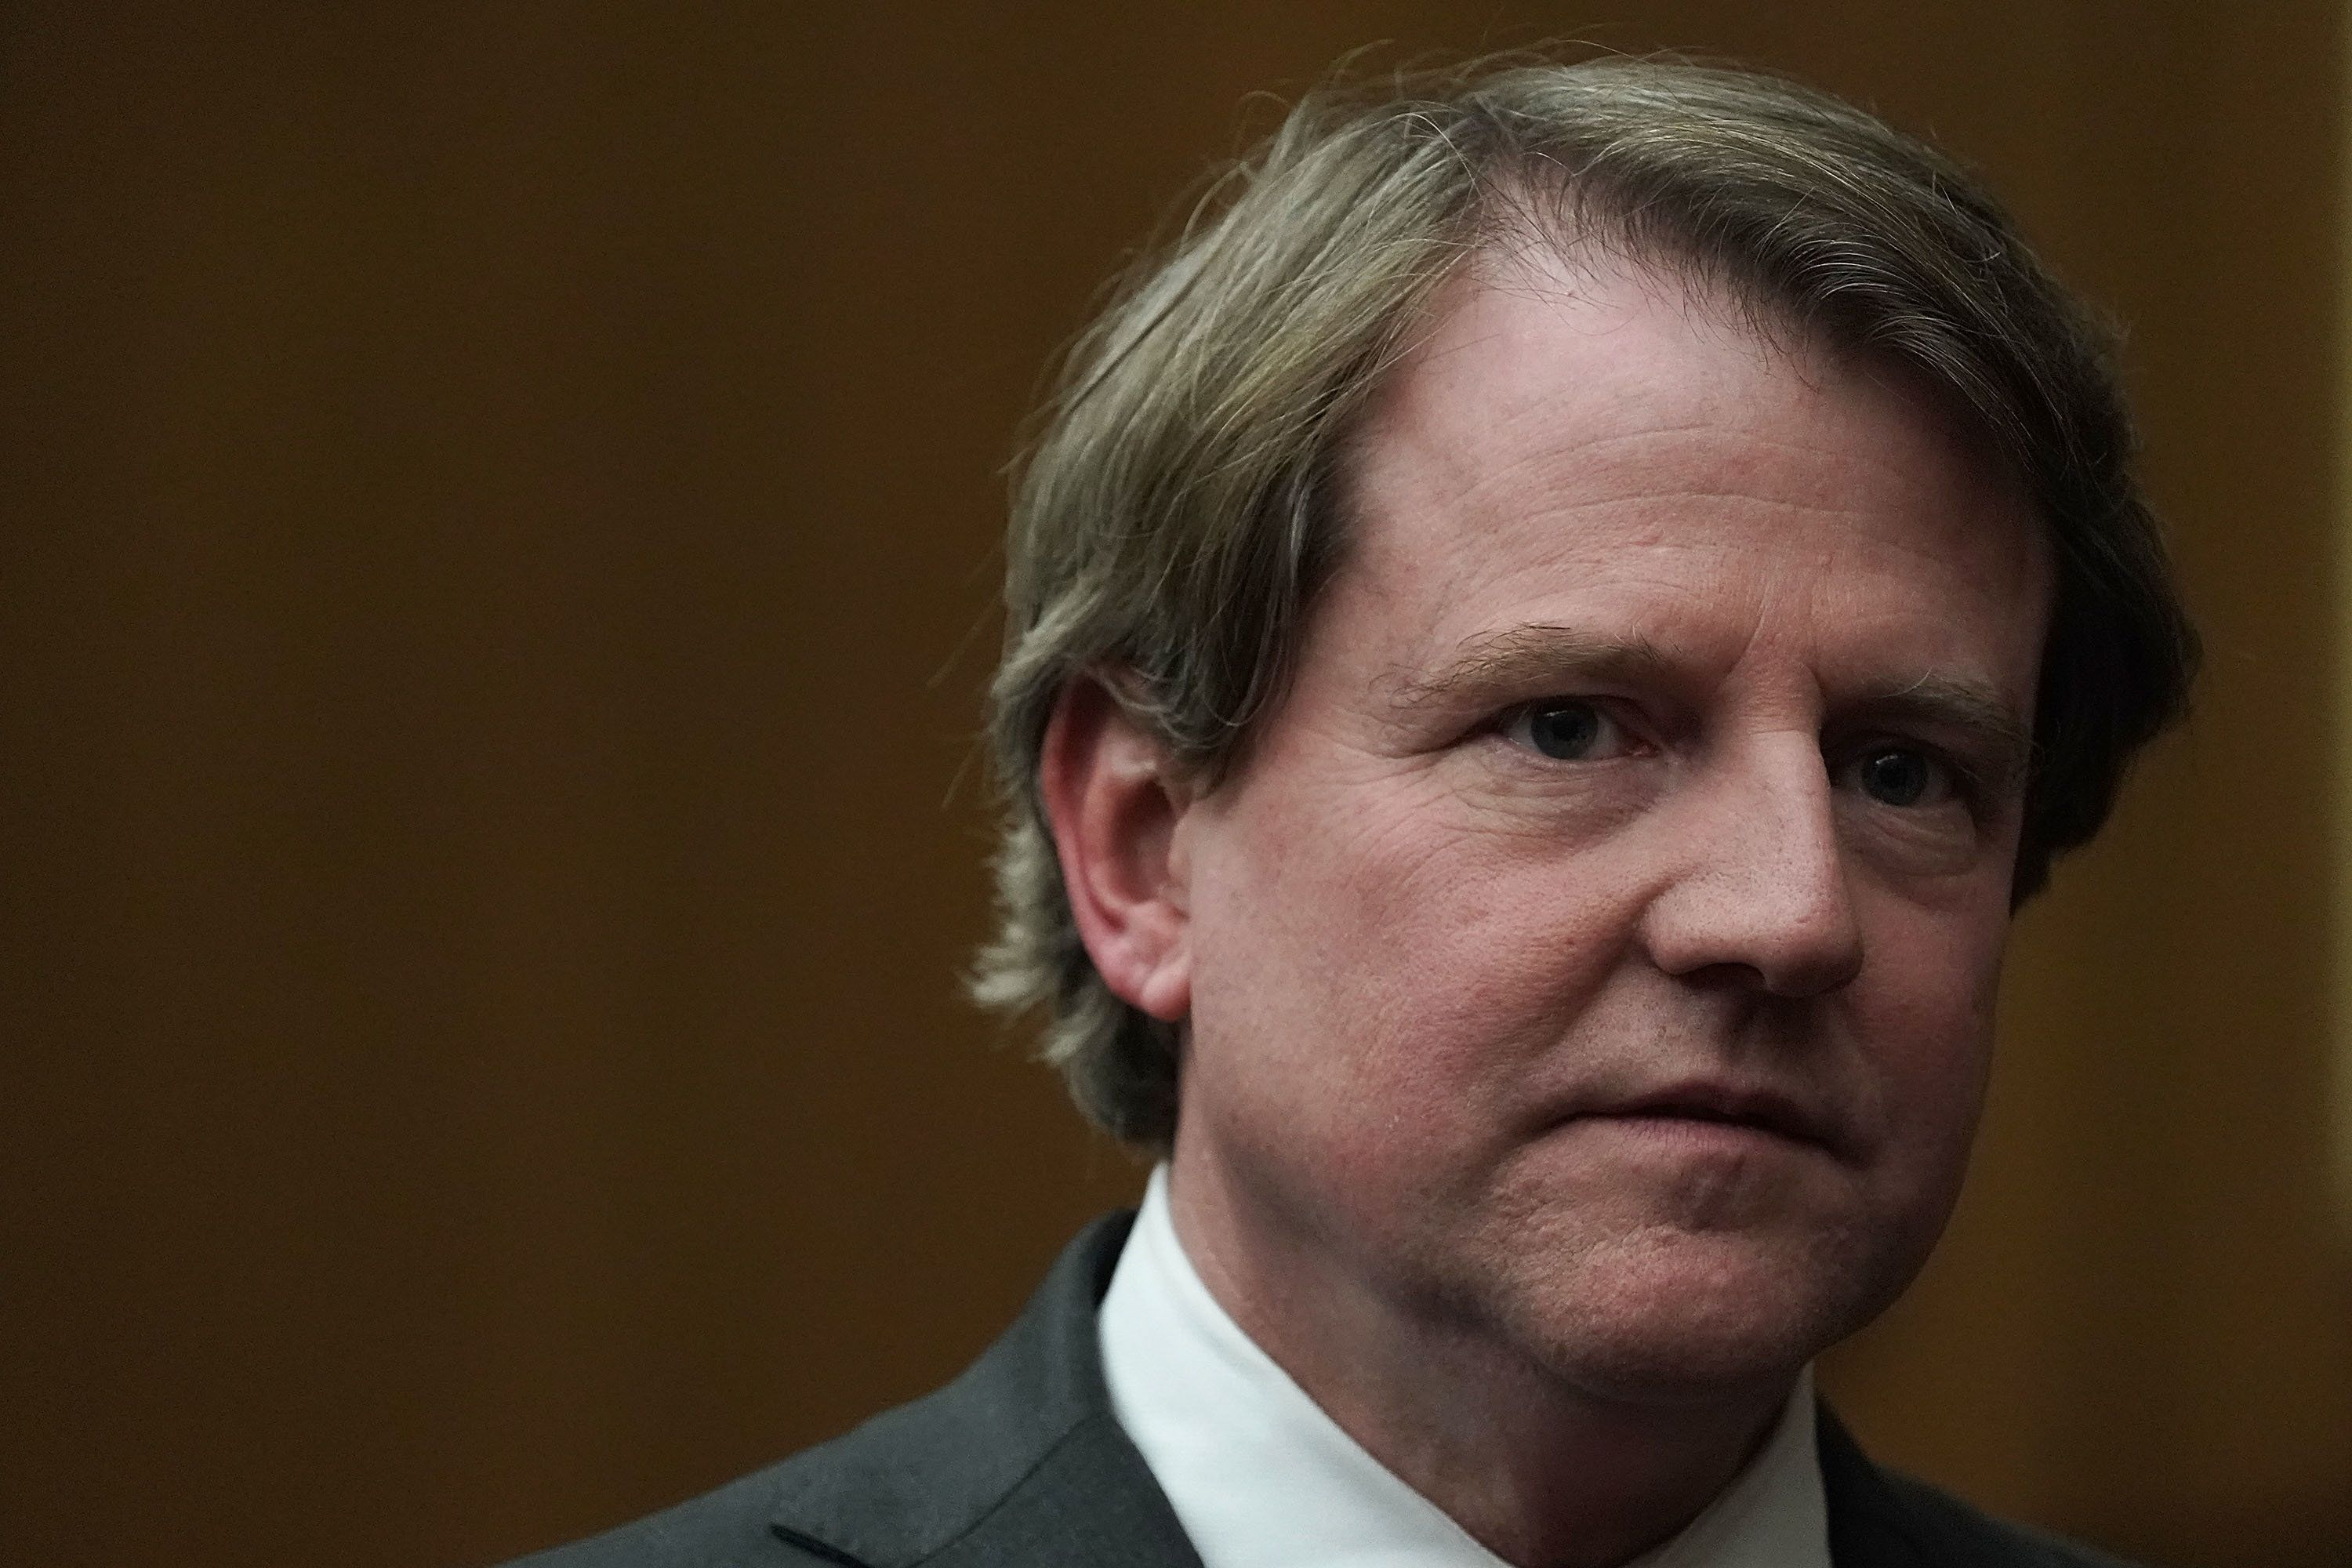 WASHINGTON, DC - APRIL 13:  U.S. White House Counsel Don McGahn after the investiture ceremony for U.S. District Judge Trevor N. McFadden April 13, 2018 at the U.S. District Court in Washington, DC.  (Photo by Alex Wong/Getty Images)